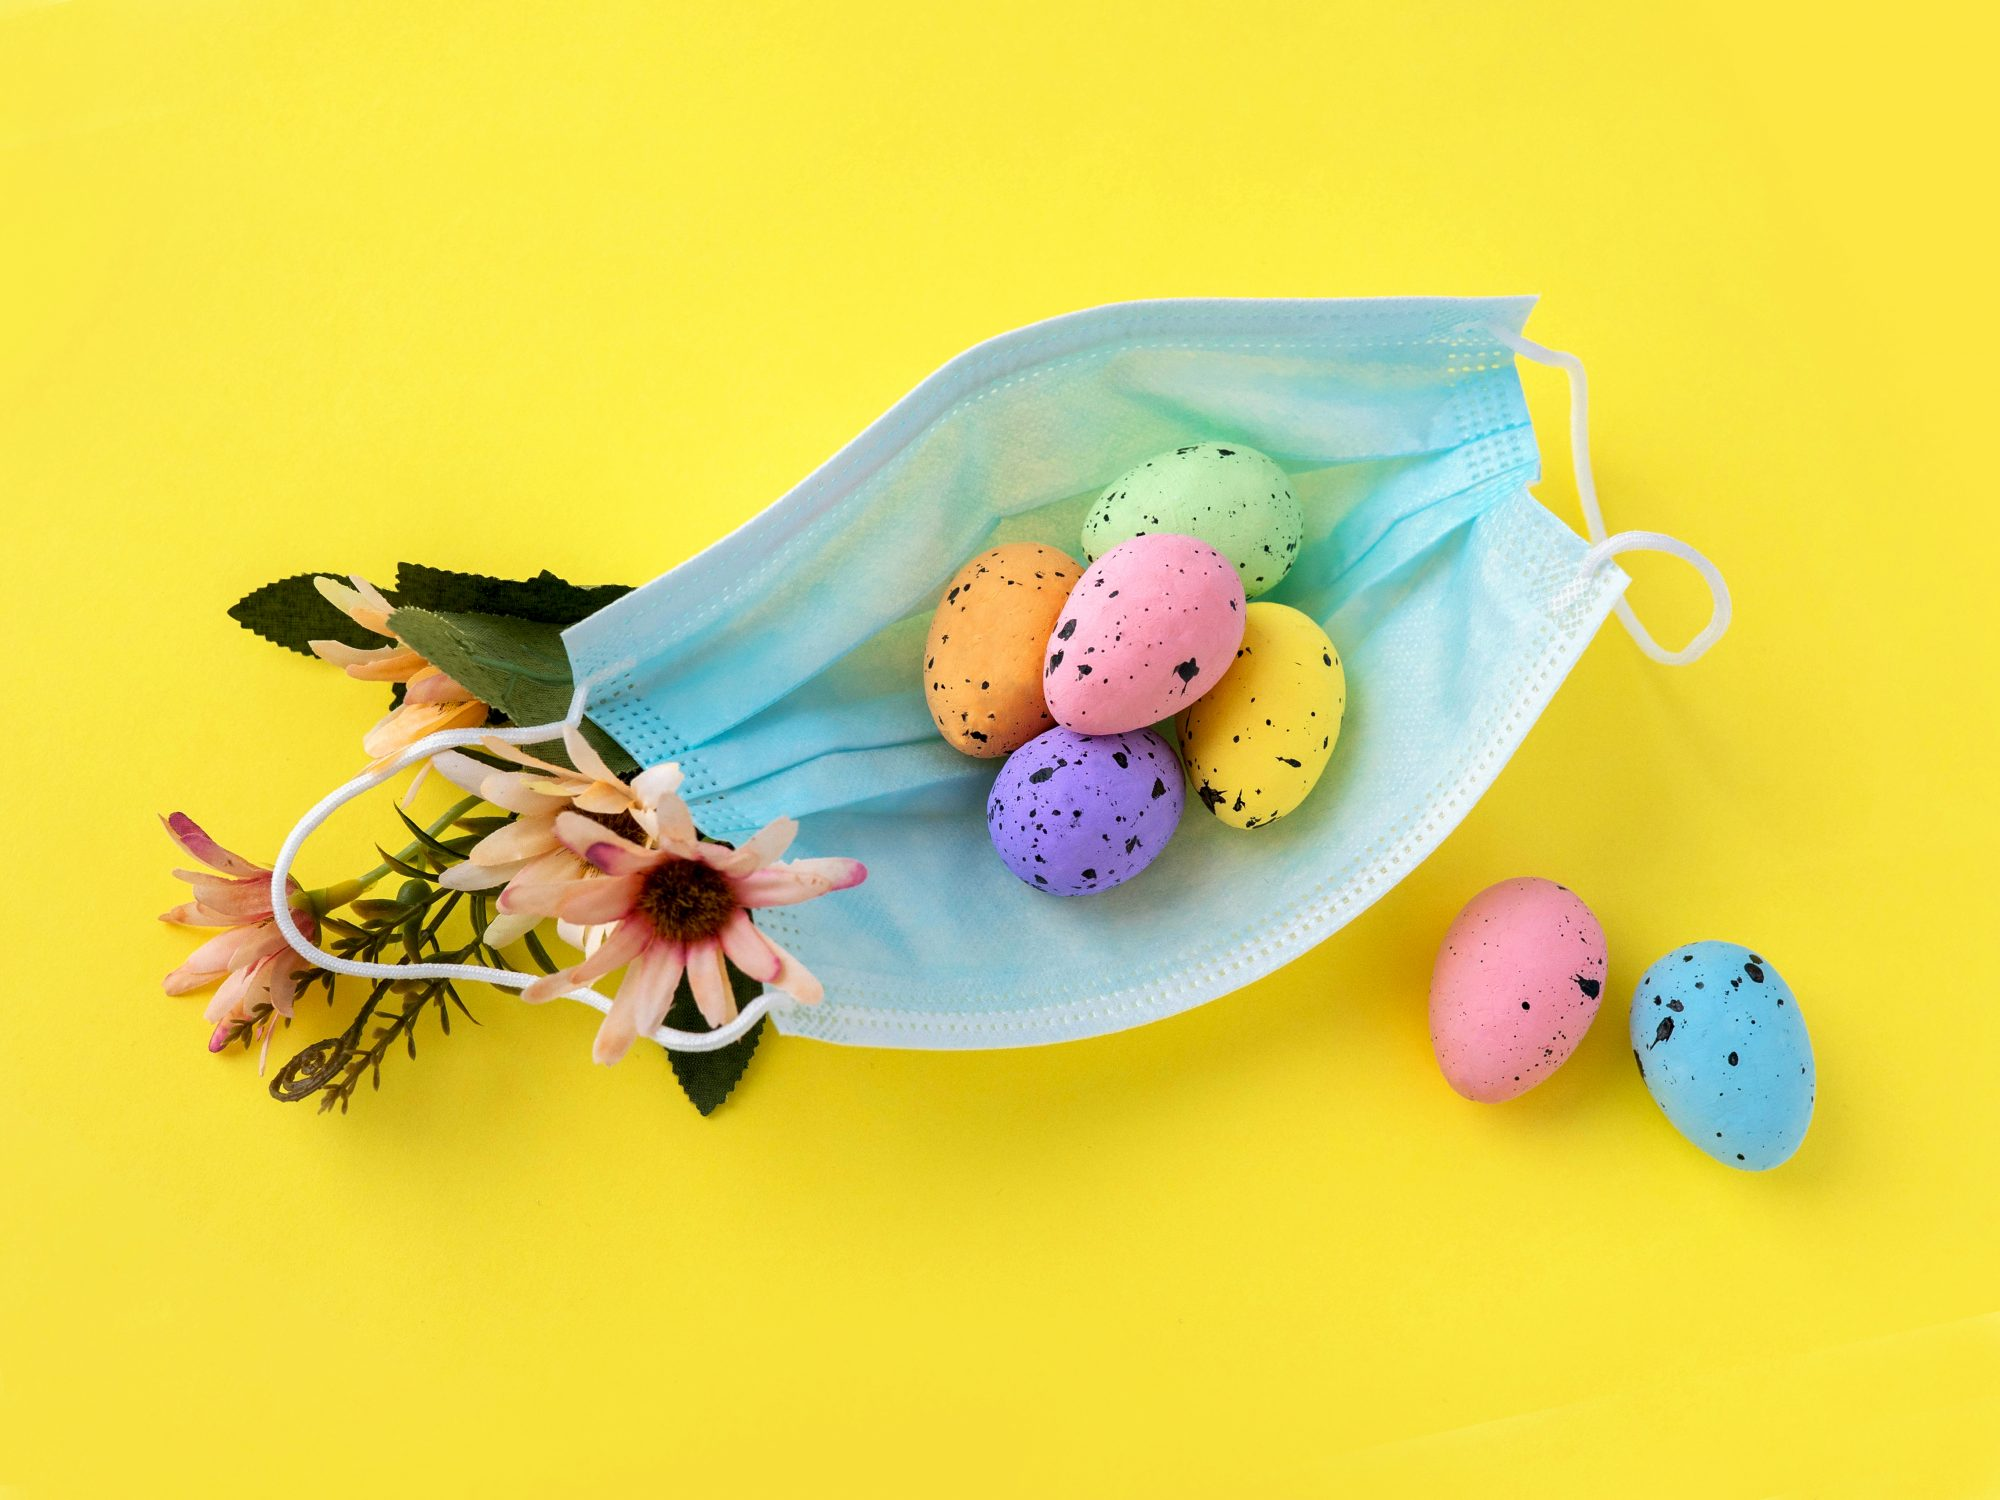 Easter ideas during coronavirus pandemic - mask and eggs